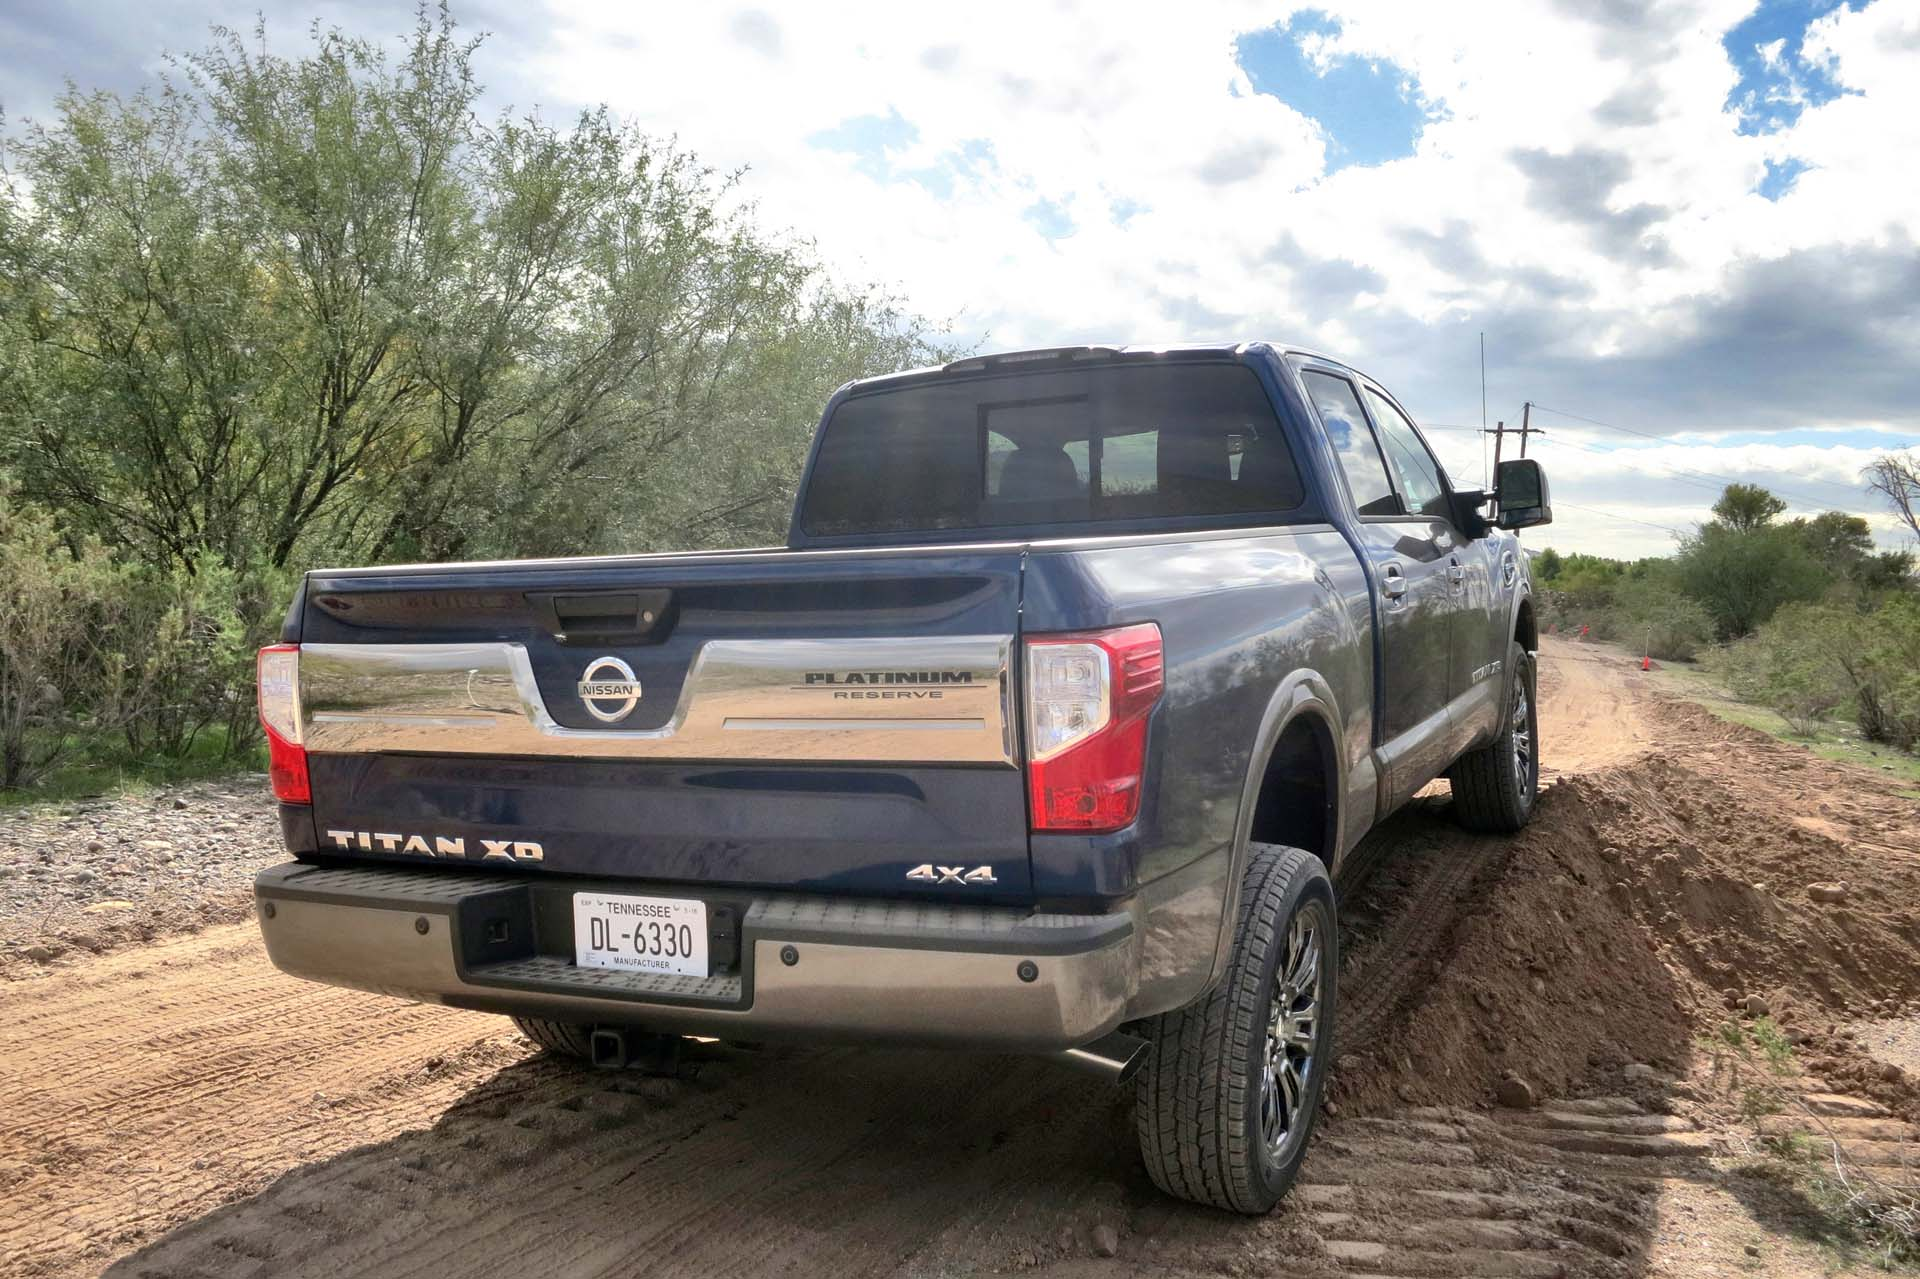 One of the reasons that buyers often opt for a light duty pickup, is the noisier, harsher ride of the heavy duty truck makes it undesirable as a daily driver. The Titan XD is a quiet, mannerly vehicle on road, even when empty. There are a number of contributing factors, mainly the use of laminated sandwich glass (normally found in luxury sedans), a 45% improved level of body sealing and hydraulic bed-to-frame mounts rather than the typical rubber